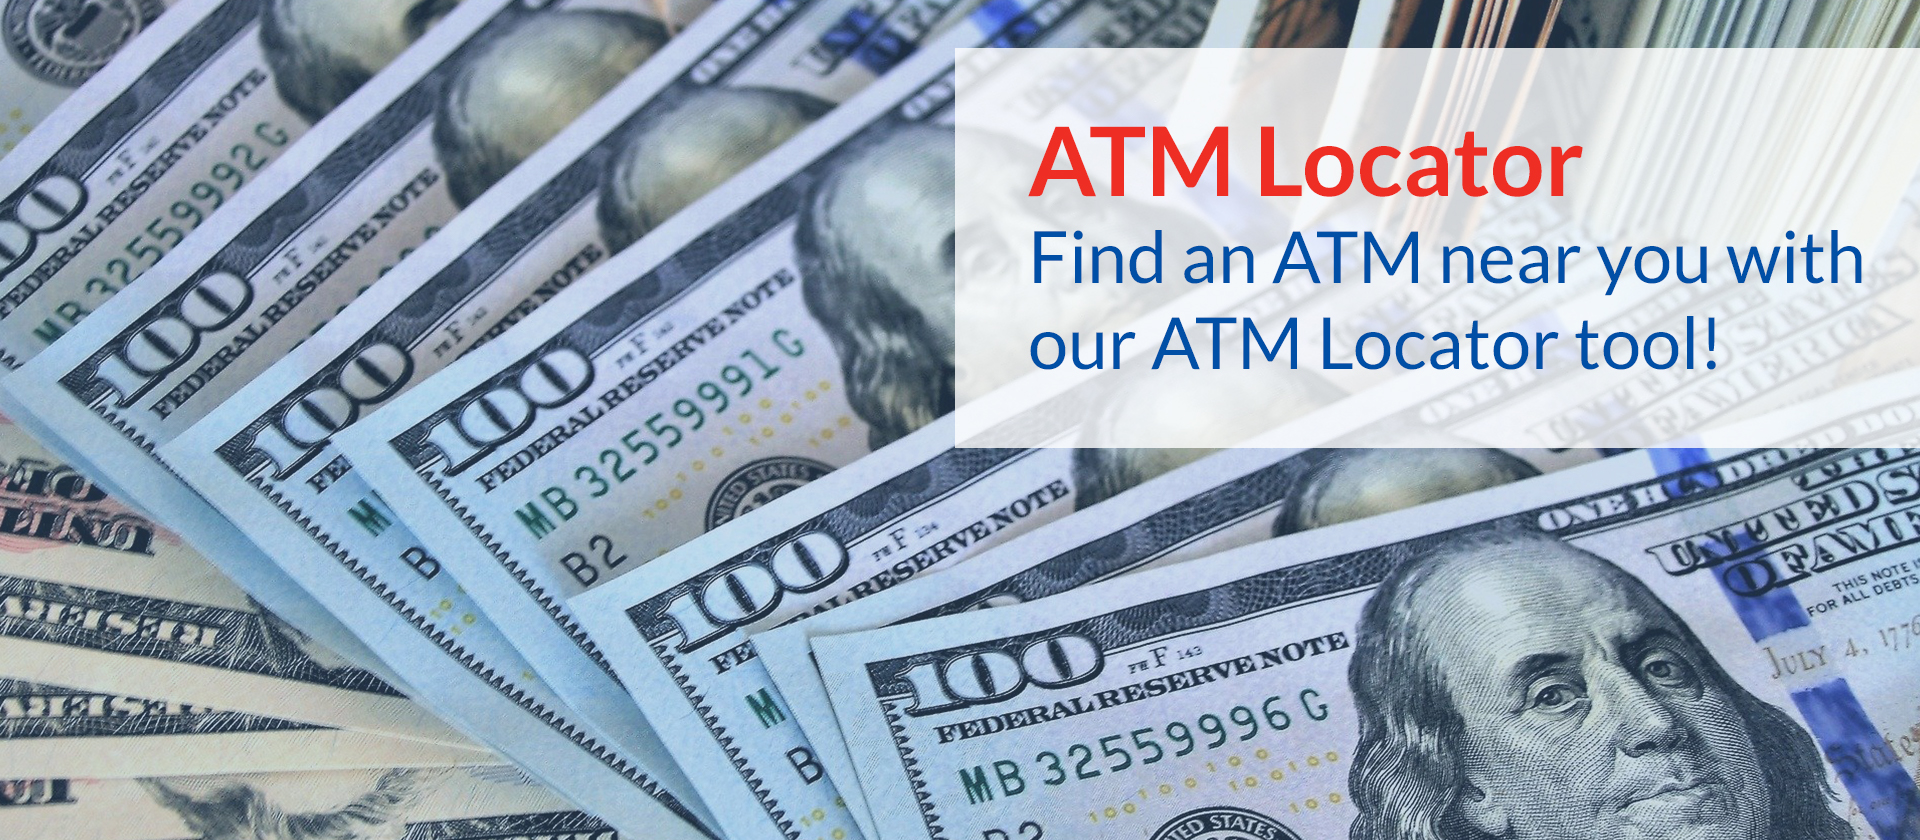 Find an ATM near you with our ATM Locator tool!